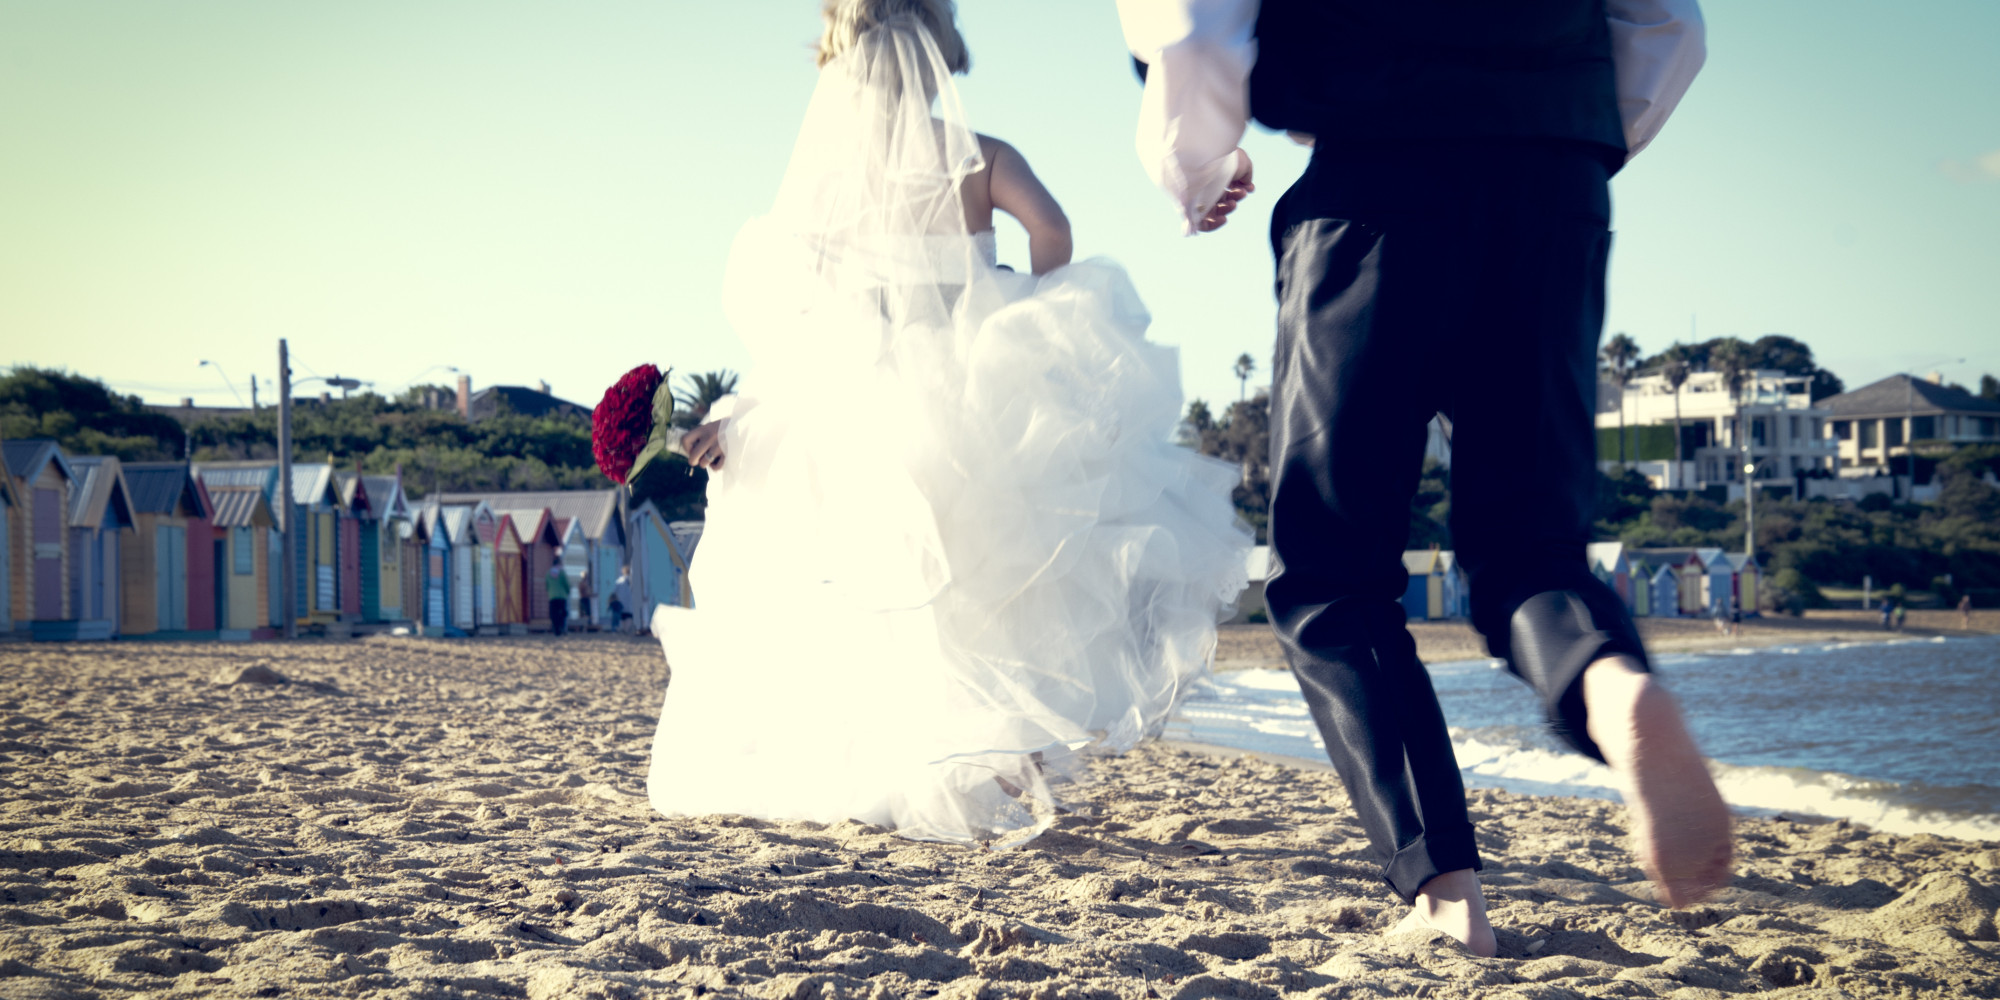 Emily Post Wedding Gift Etiquette: Why Guests Shouldn't Stress About Destination Wedding